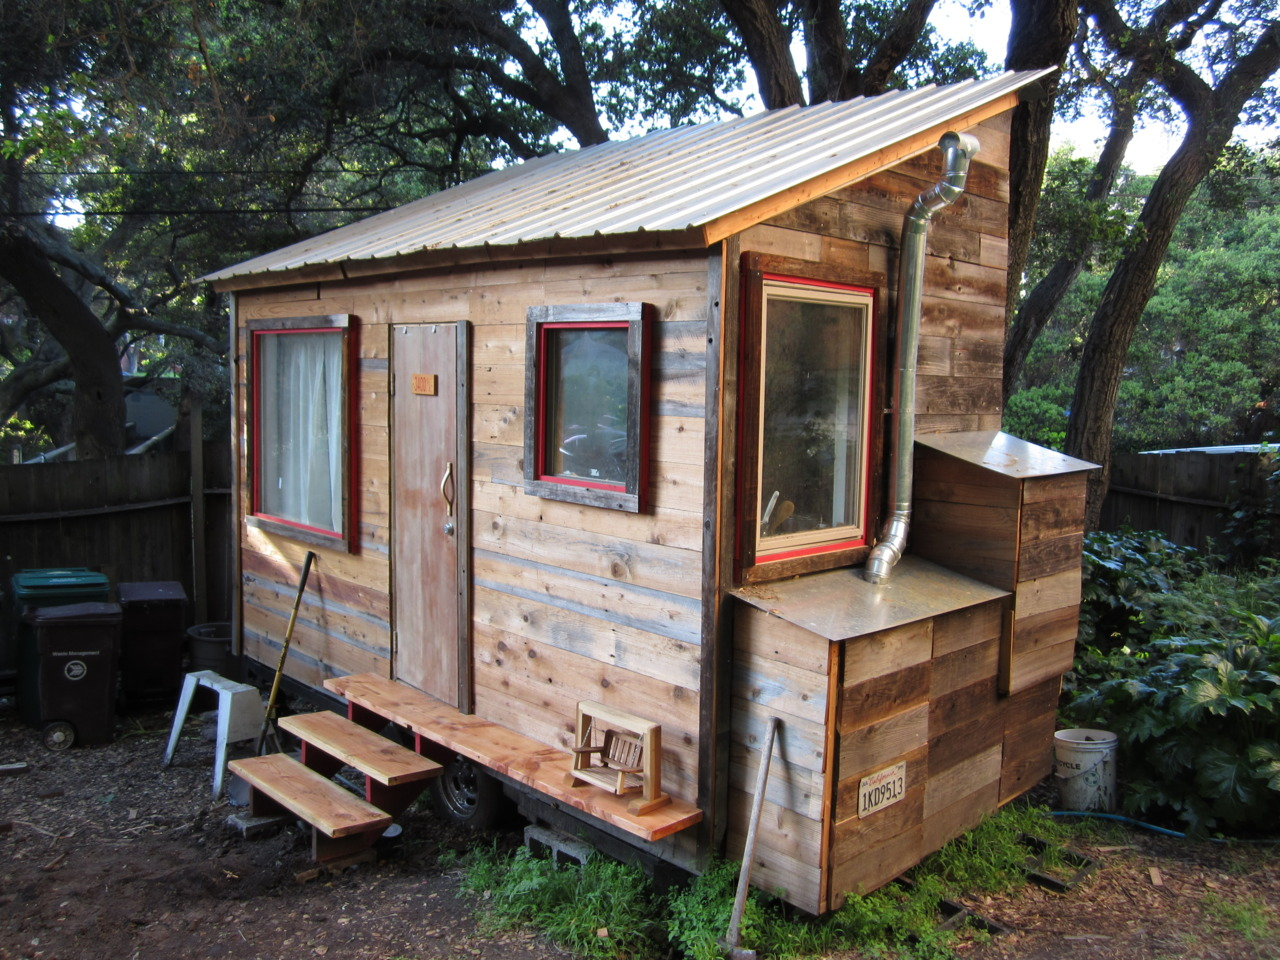 Tiny house under construction in Oakland, CA.